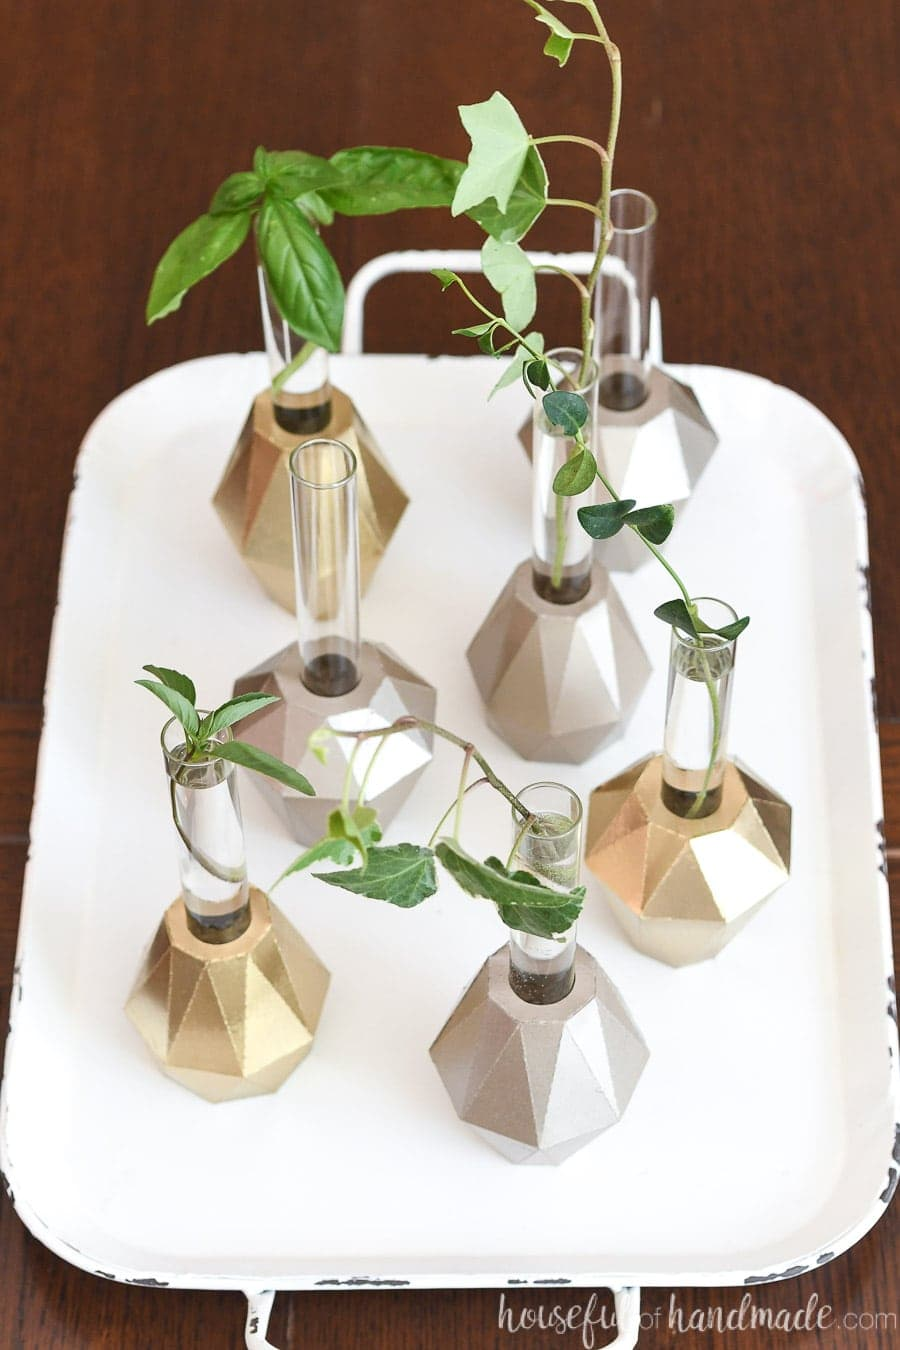 Looking down on a white tray plant propagation station: 7 jeweled test tube vases holding plant clippings.